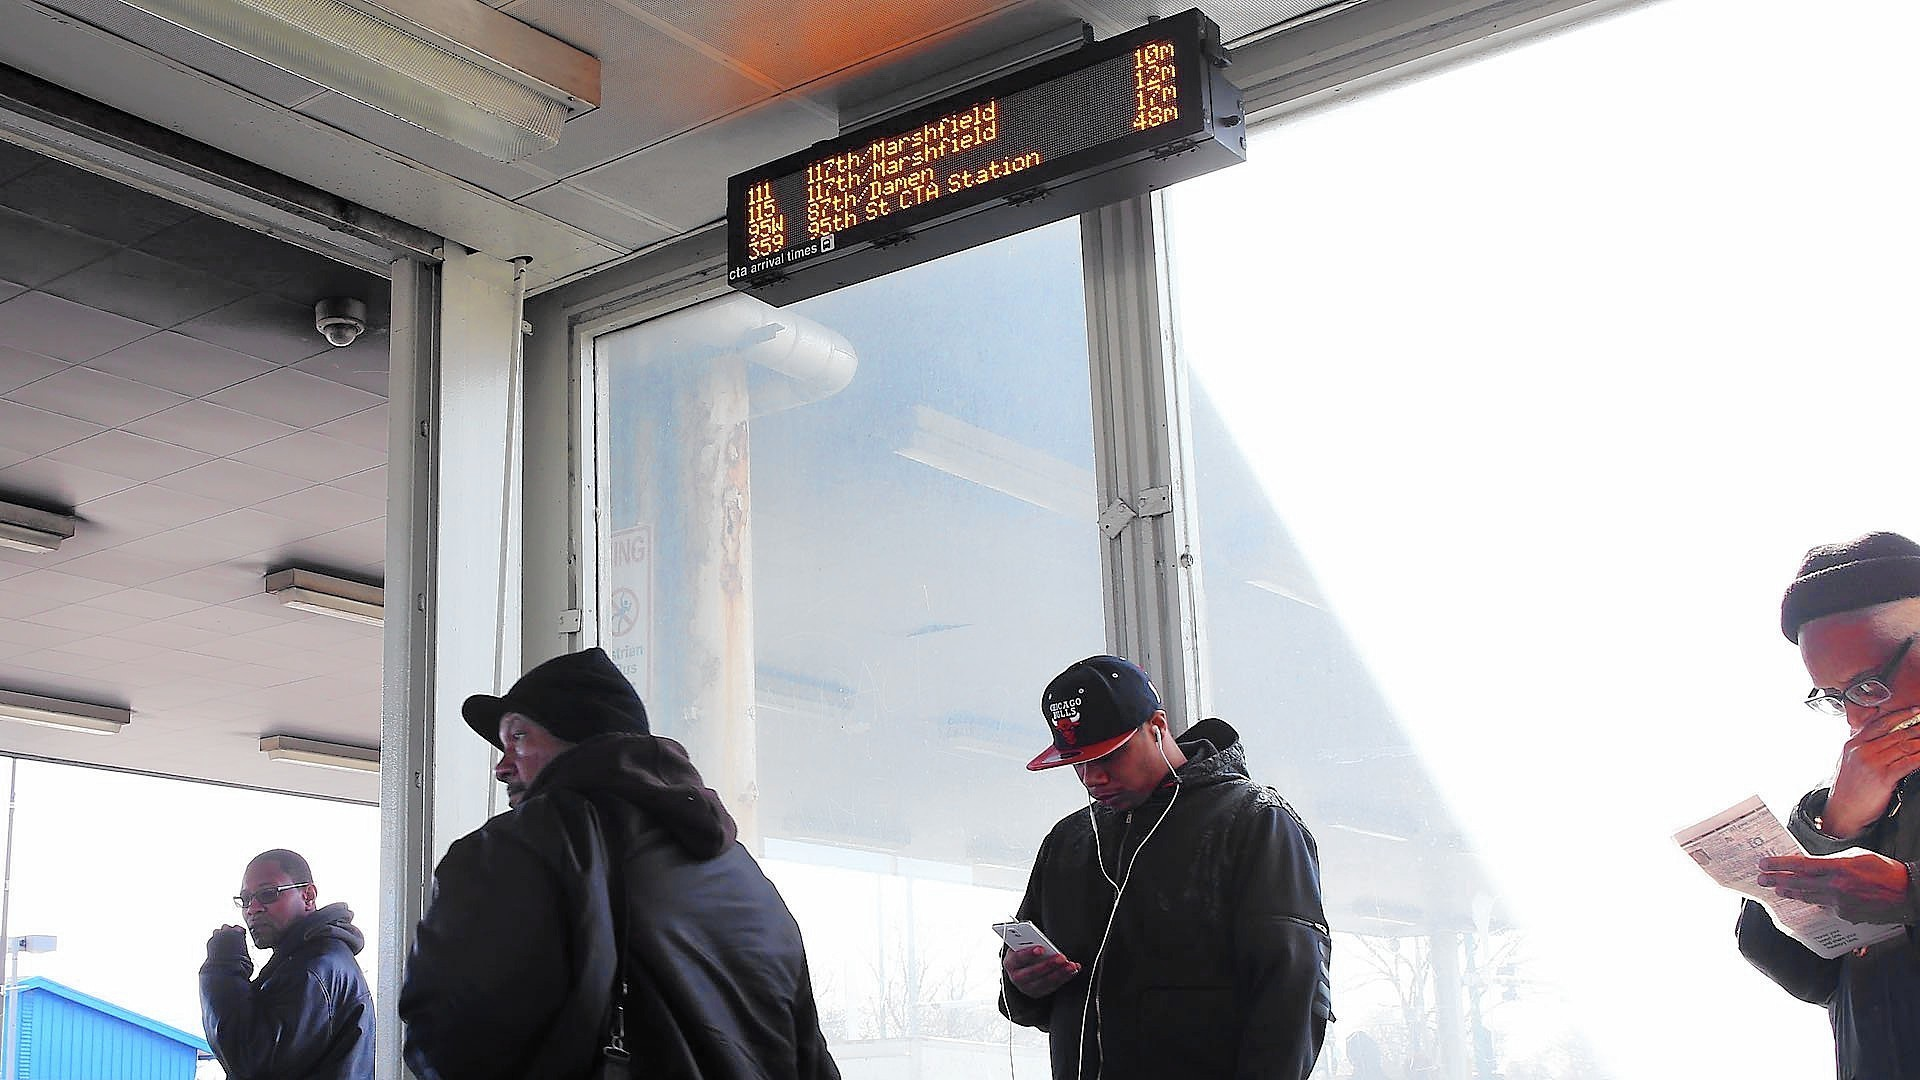 Cta Adds Bus Tracker Displays At 51 Rail Stops Chicago